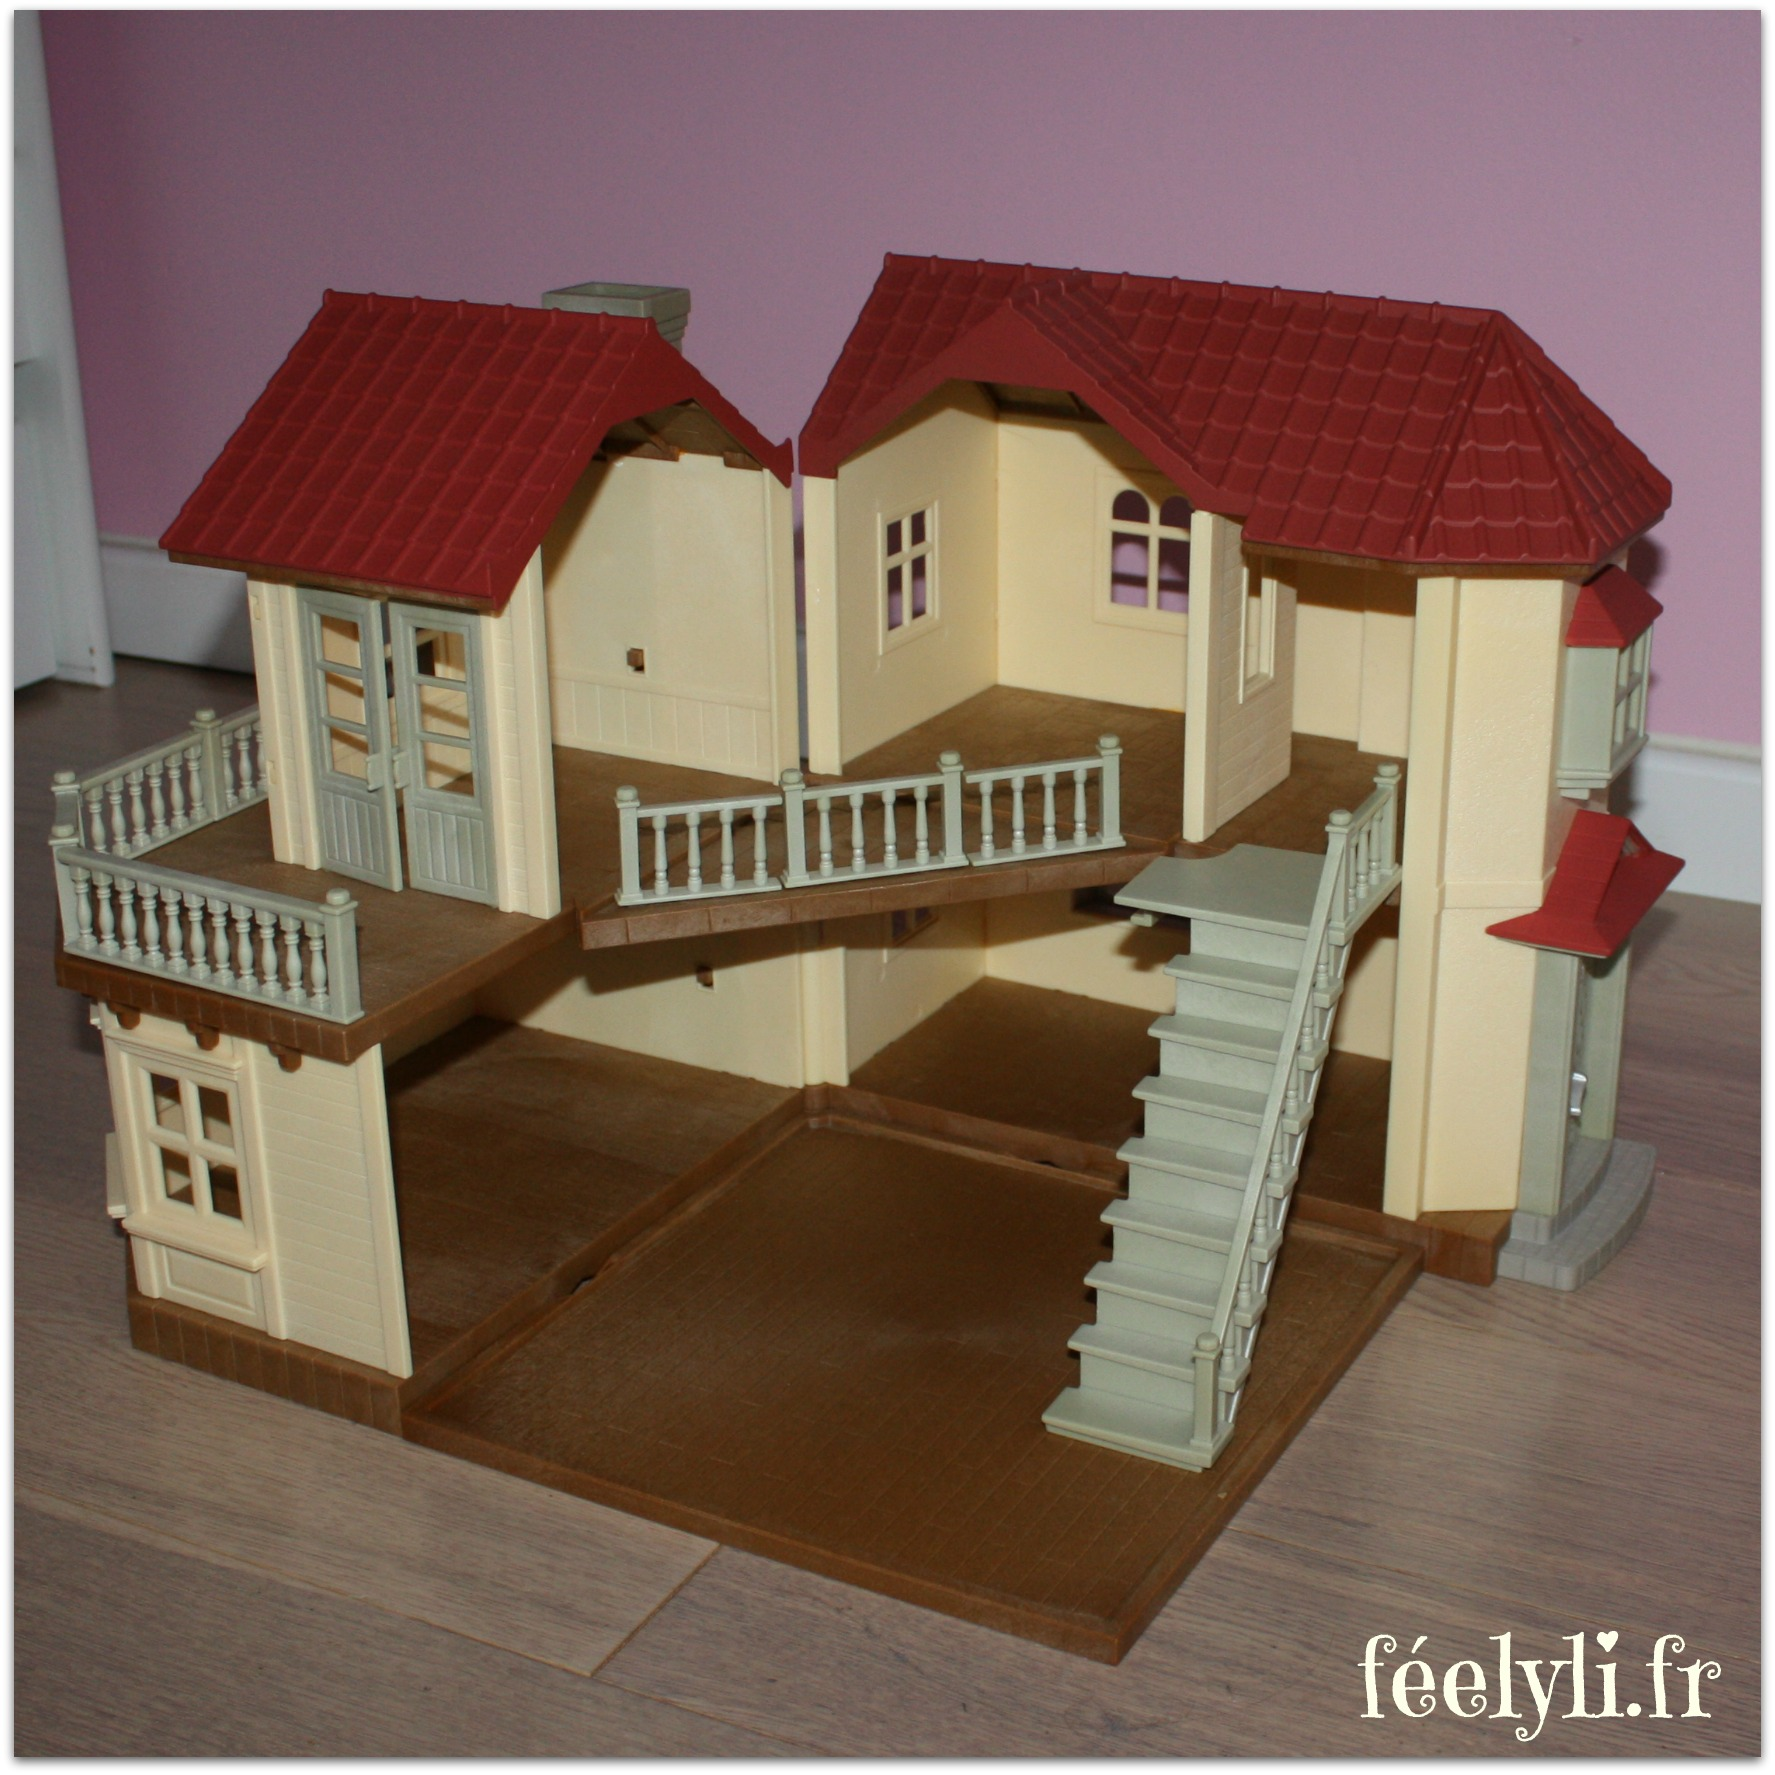 Les sylvanian families la grande maison tradition for Maison tradition